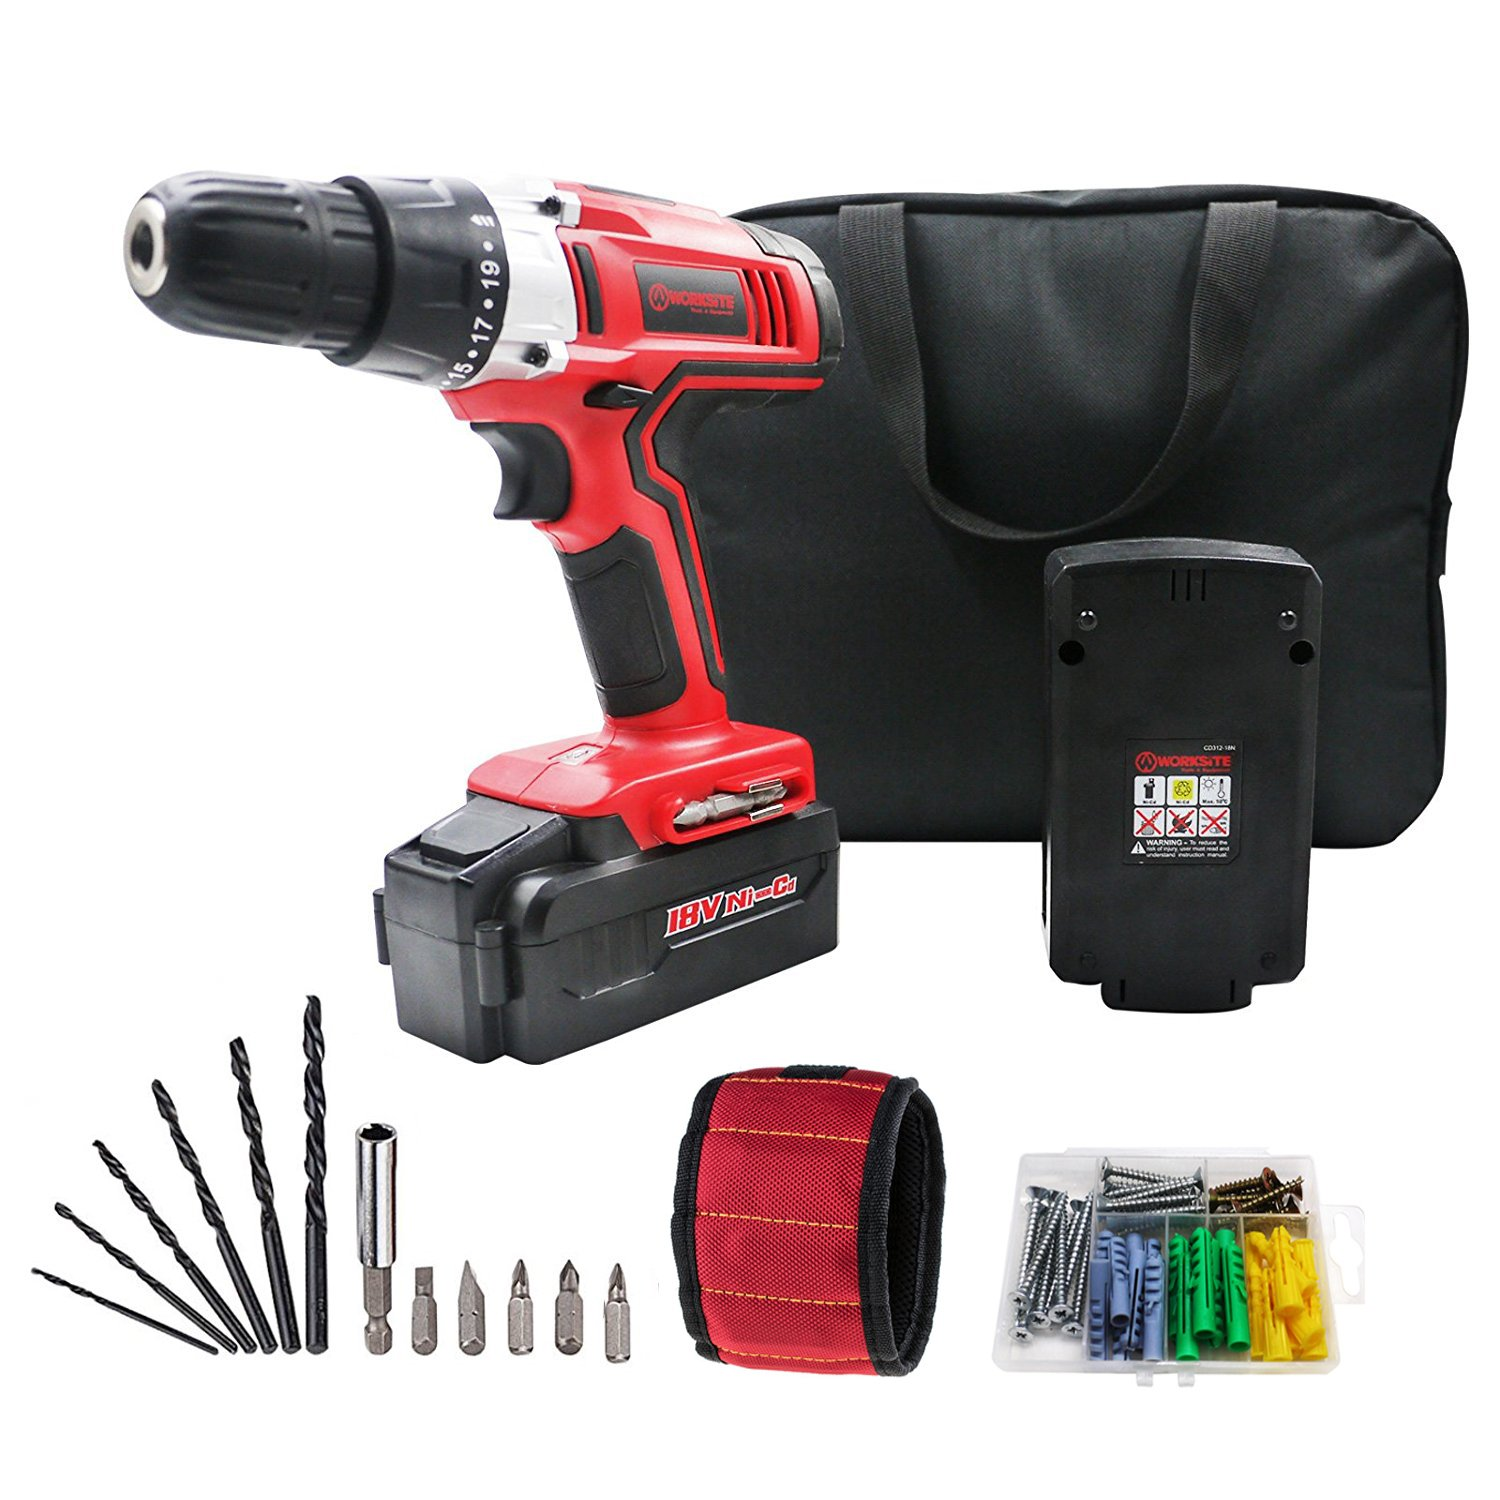 WORKSITE 18V Cordless Electric Drill Screwdriver with 2 1200 mAh Batteries, 20 Position Keyless Clutch, Variable Speed Switch, LED Light, Expansion Screw, Magnet Wristband & 13 Pcs Bit Accessory Set